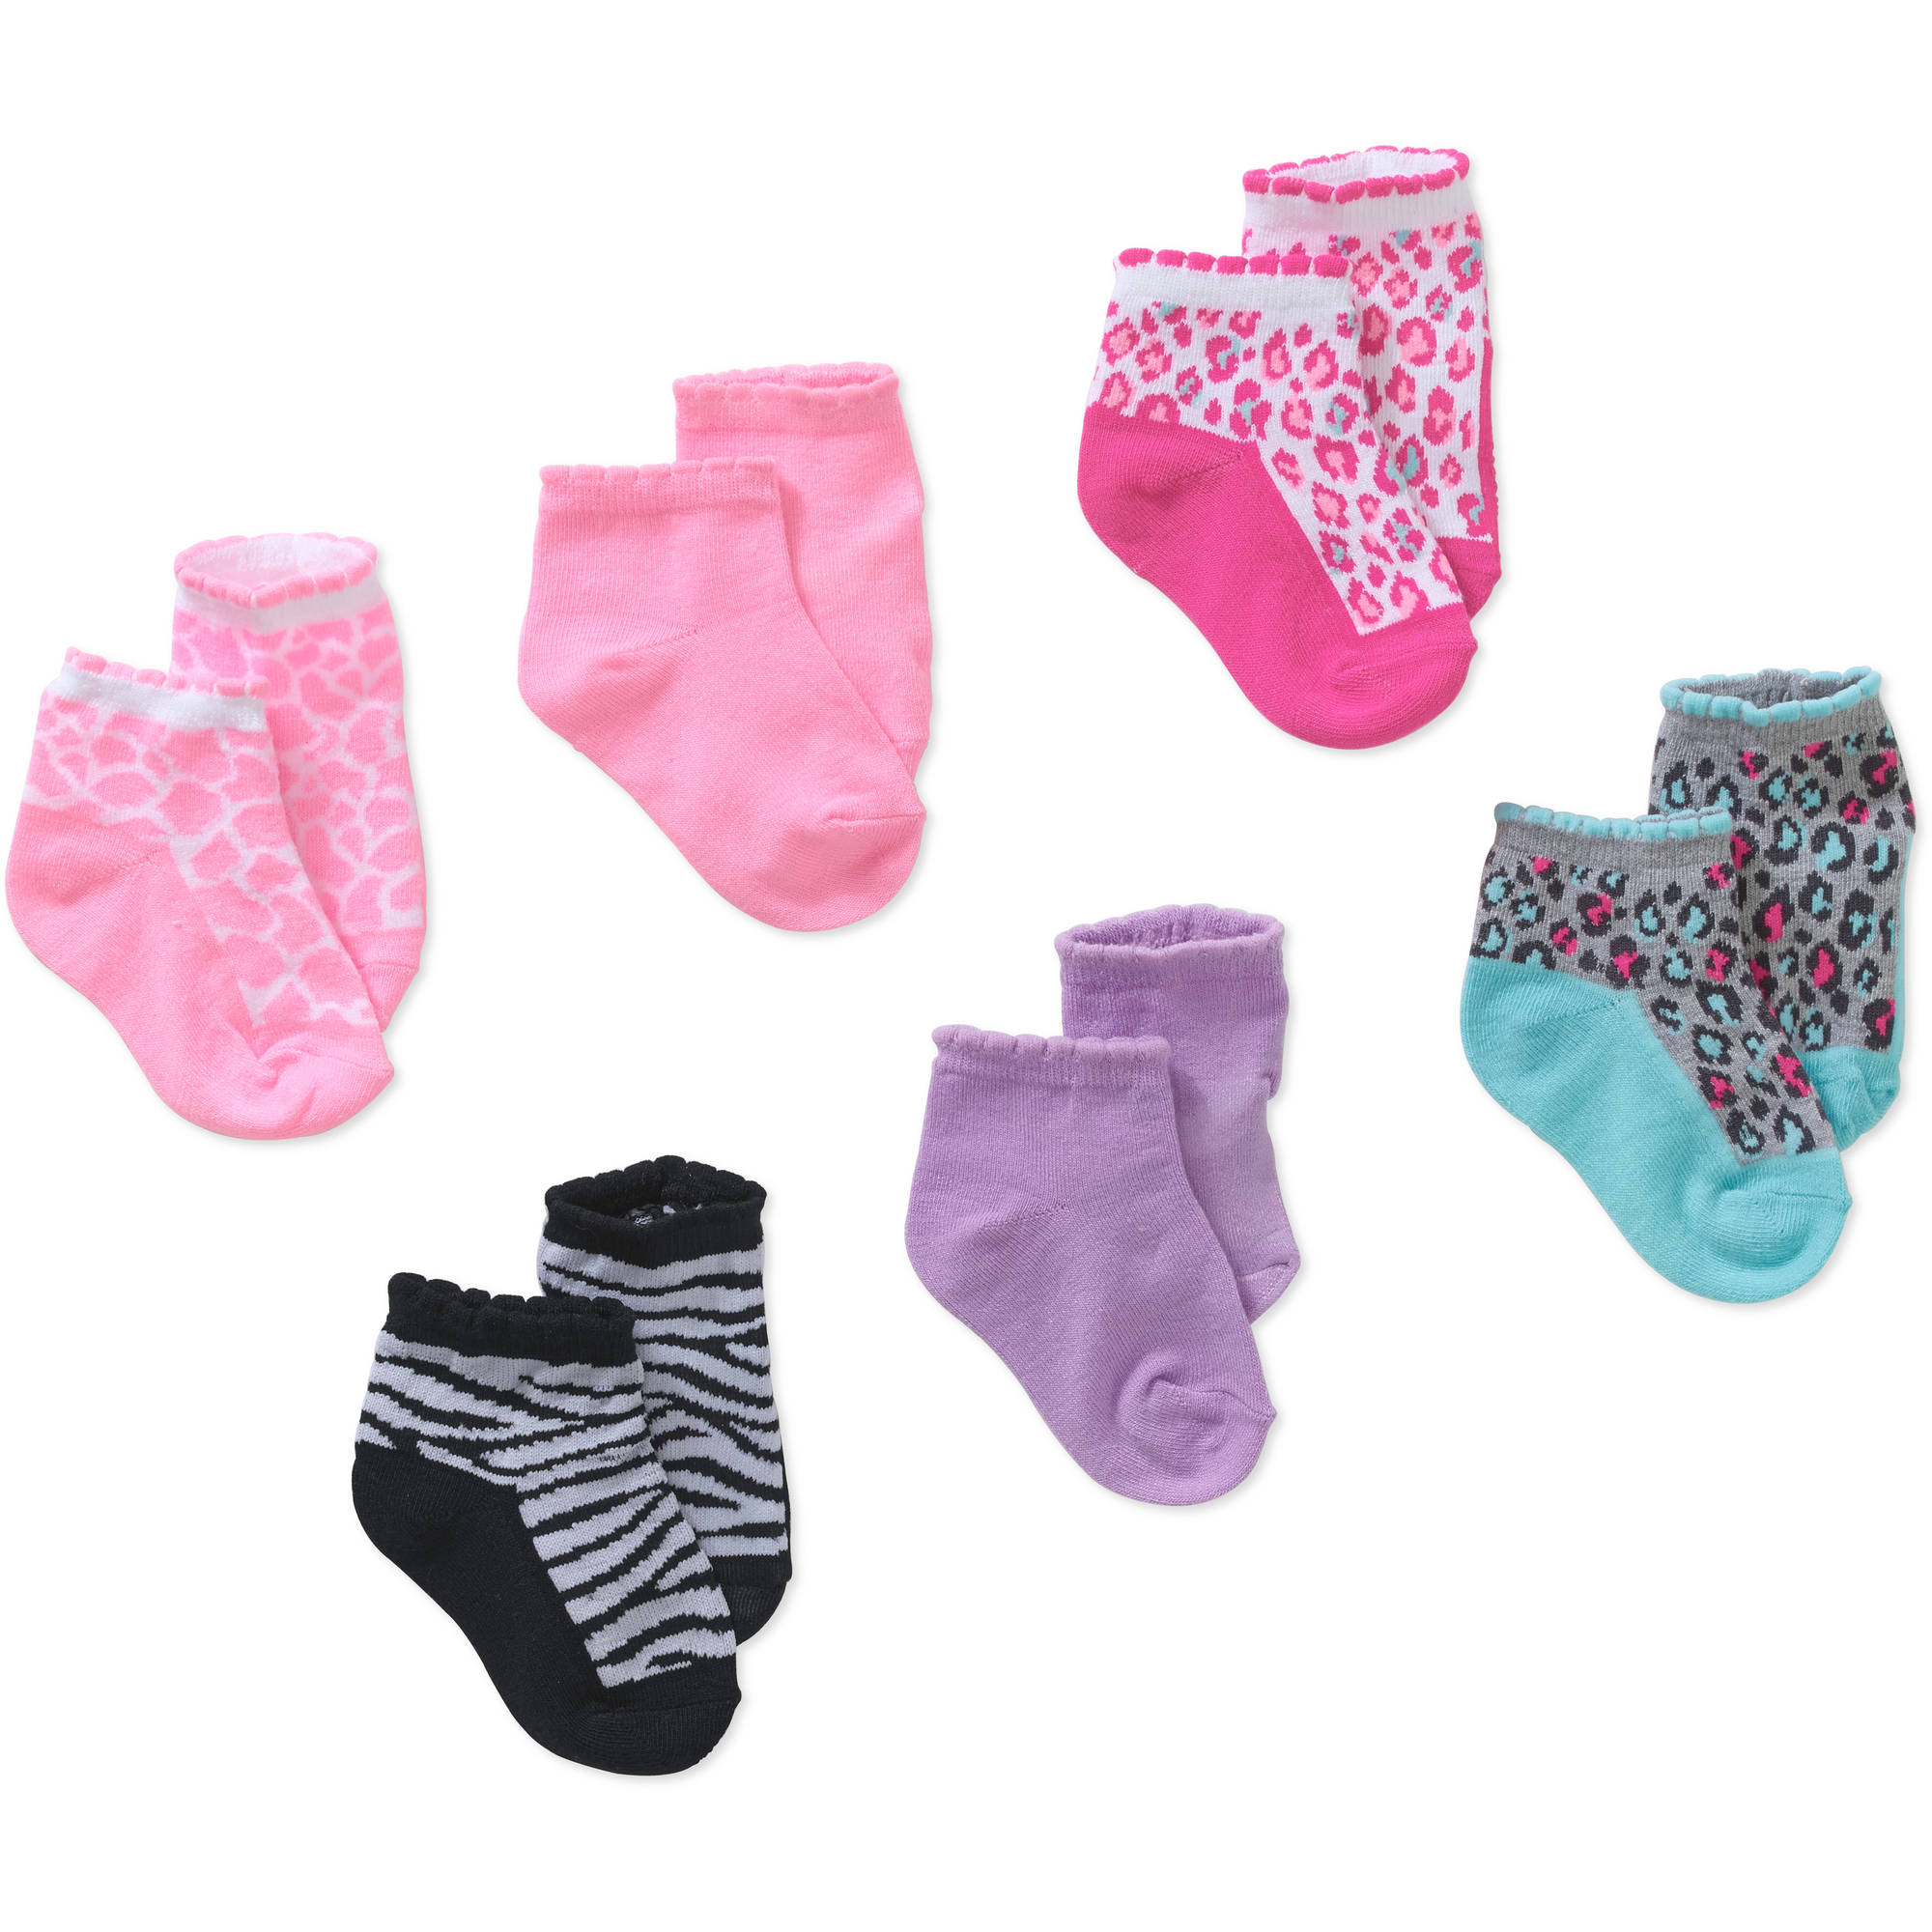 Garanimals Newborn to Toddler Baby Girls' Shorty Animal Print Socks, 6 Pack